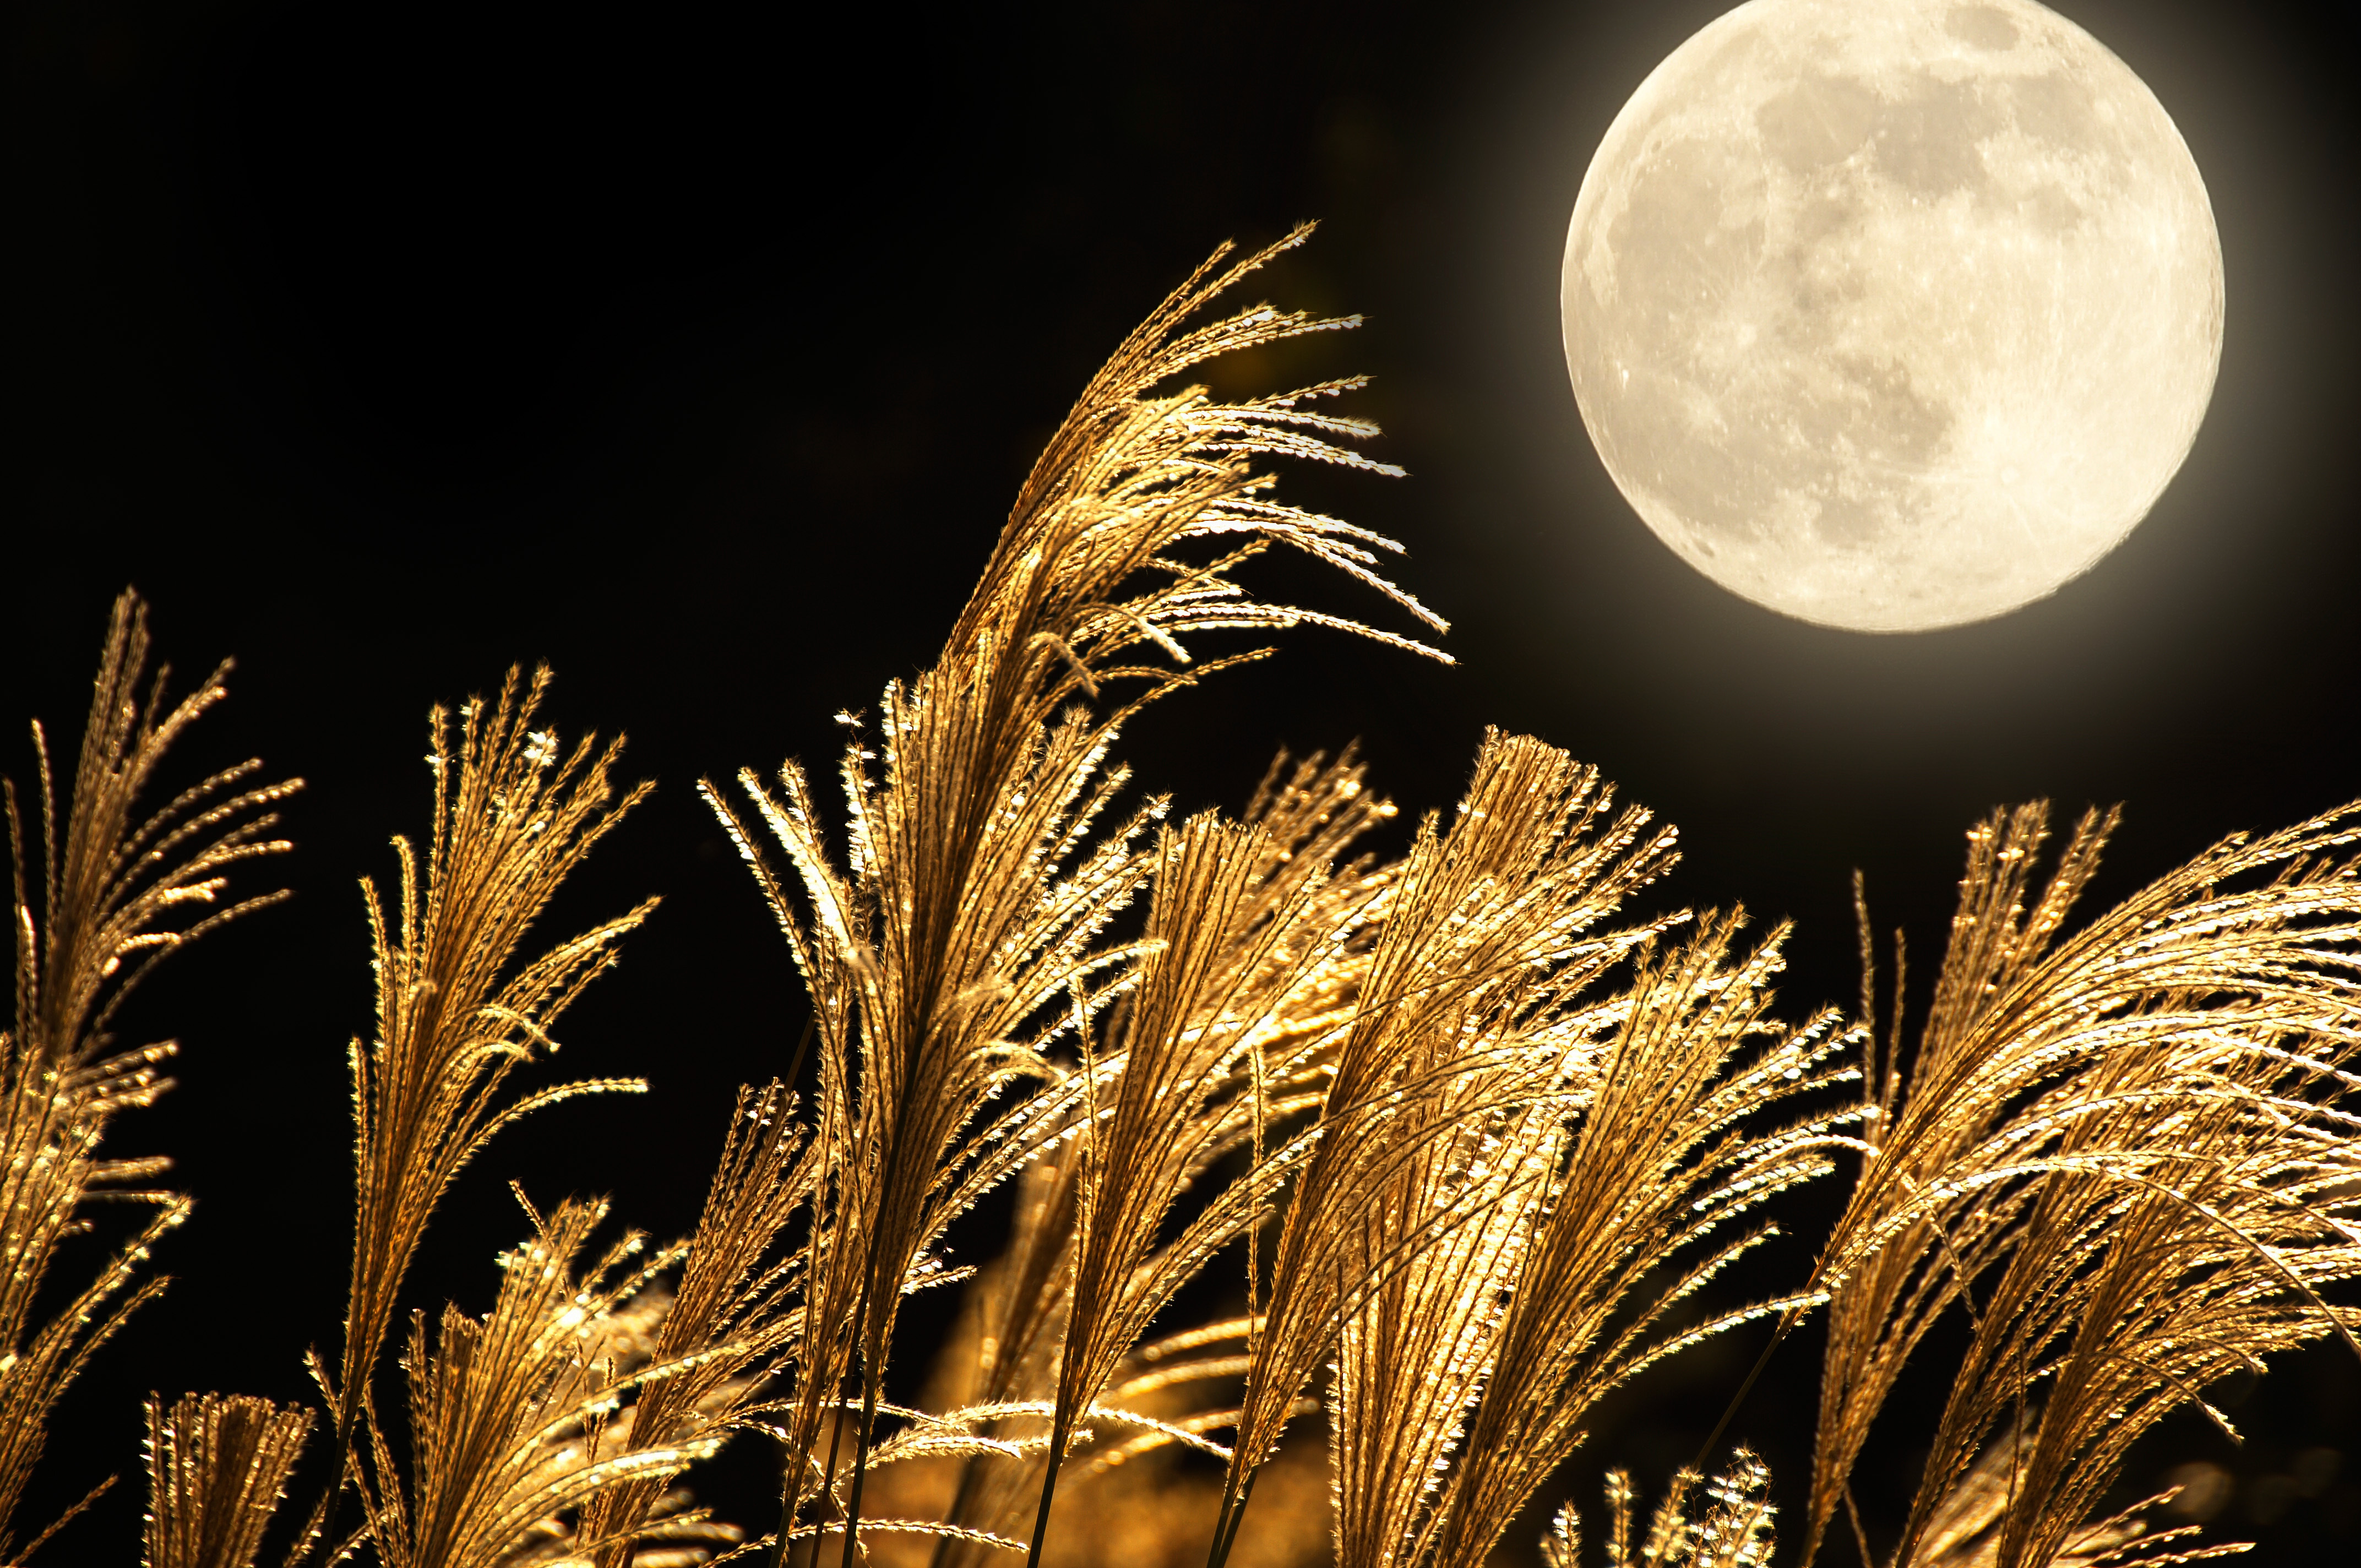 The Full Harvest Moon Rises Friday the 13th!